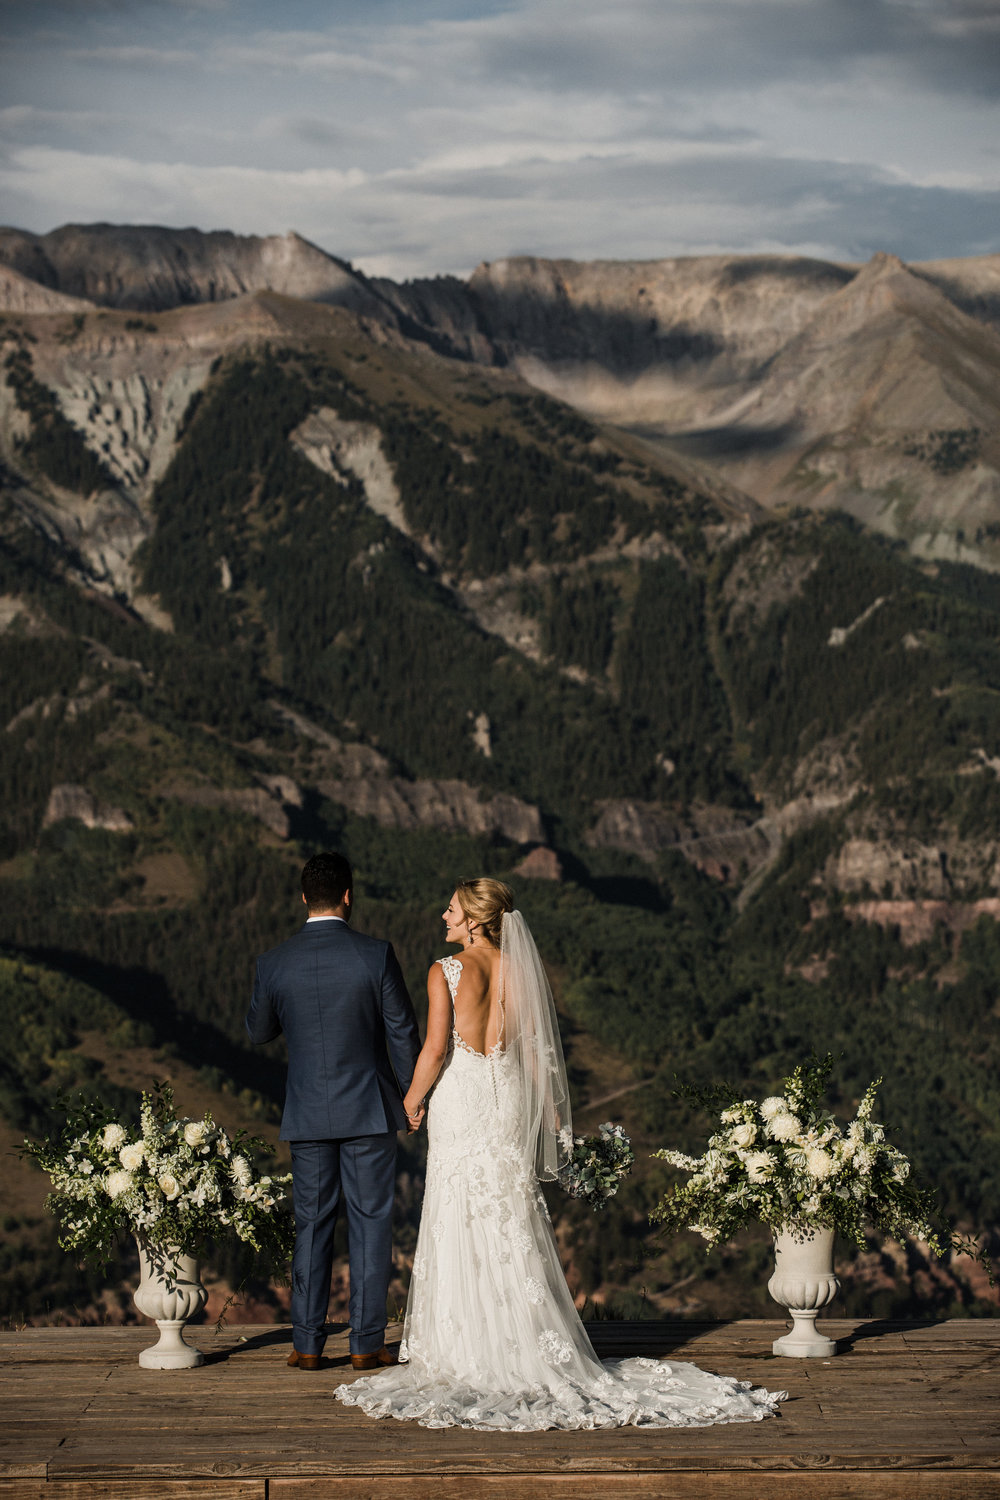 leahandashton-telluride-wedding-photography-0073.jpg